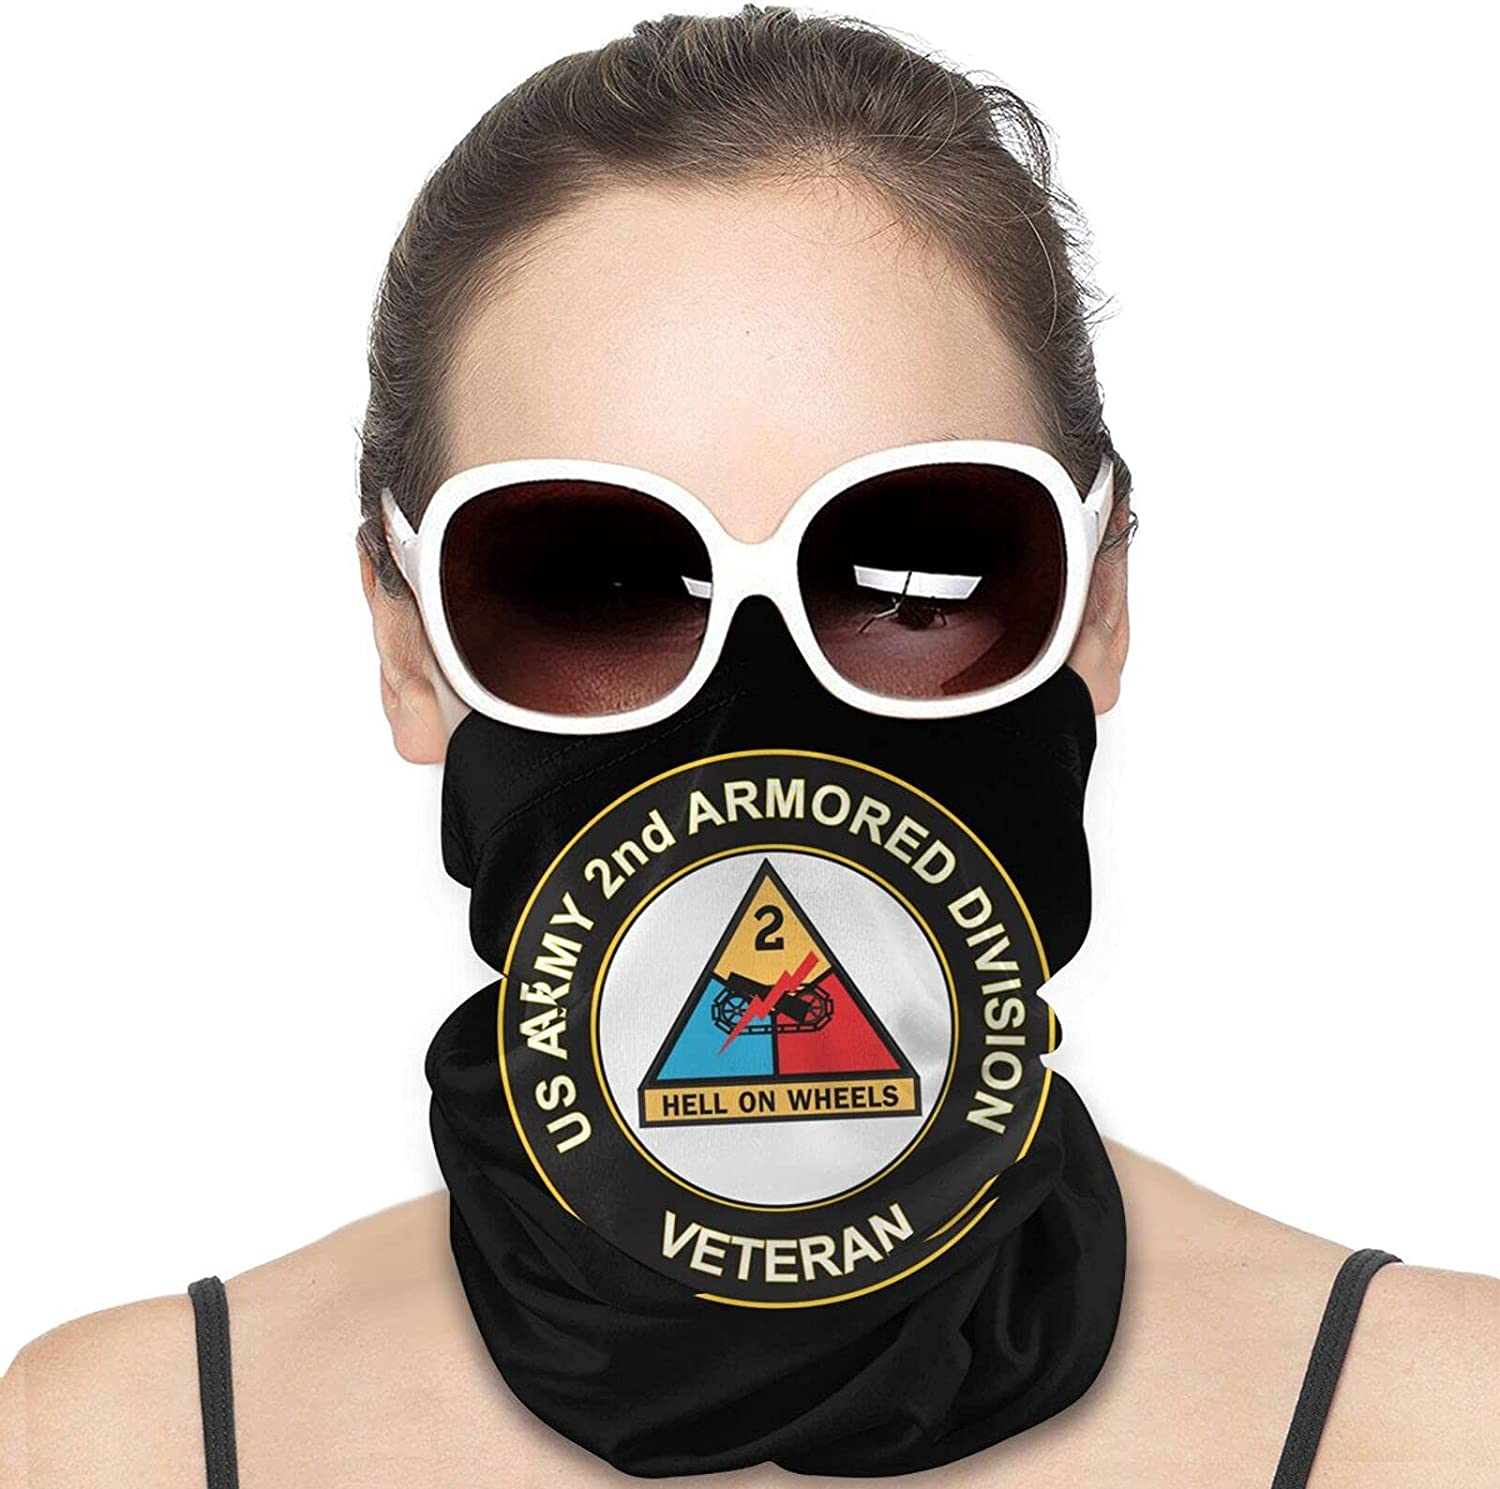 U.S. Army Veteran 2nd Armored Division Round Neck Gaiter Bandnas Face Cover Uv Protection Prevent bask in Ice Scarf Headbands Perfect for Motorcycle Cycling Running Festival Raves Outdoors